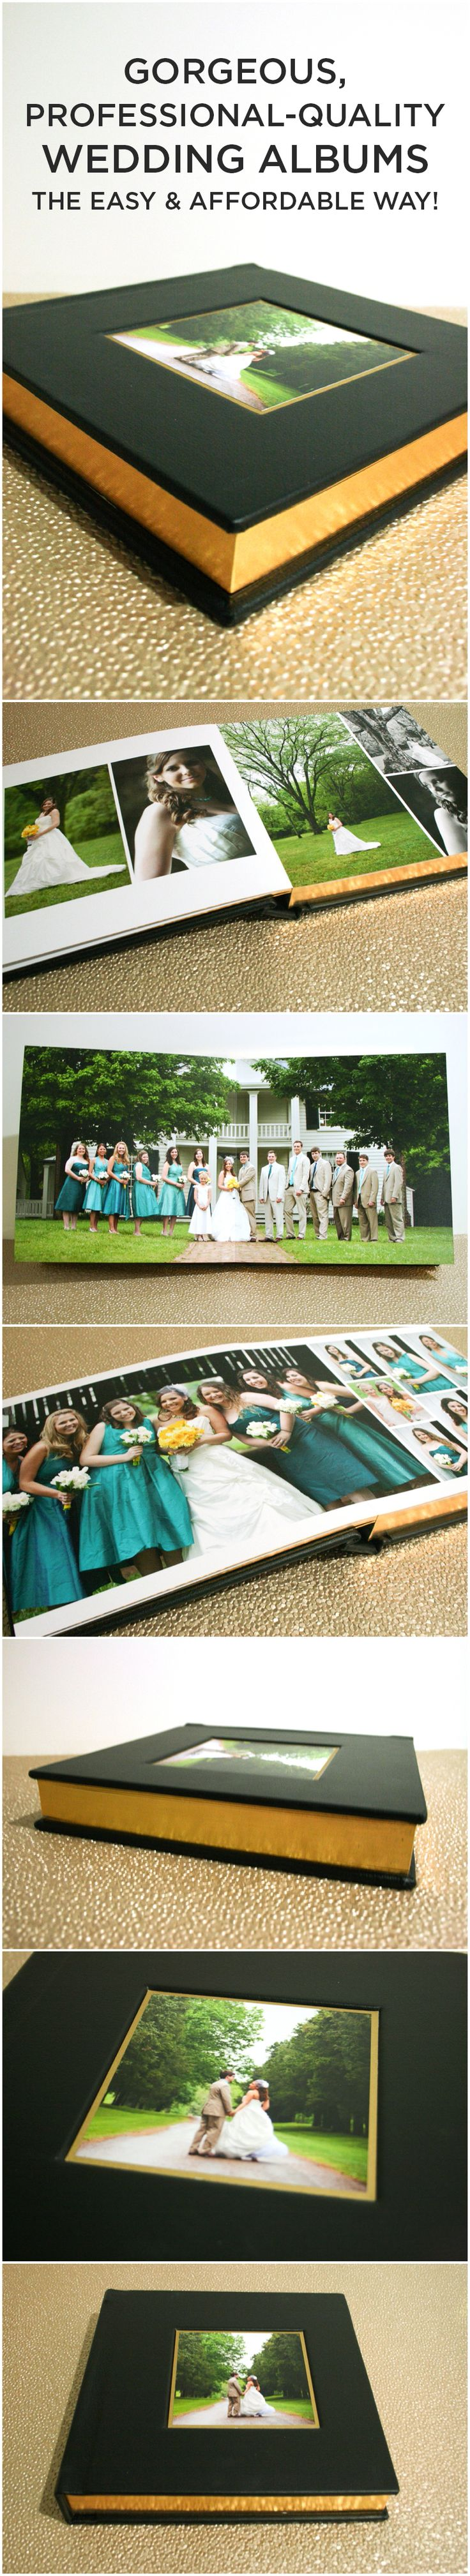 Gorgeous, professional-quality wedding albums the easy and affordable way, with MyPublisher!